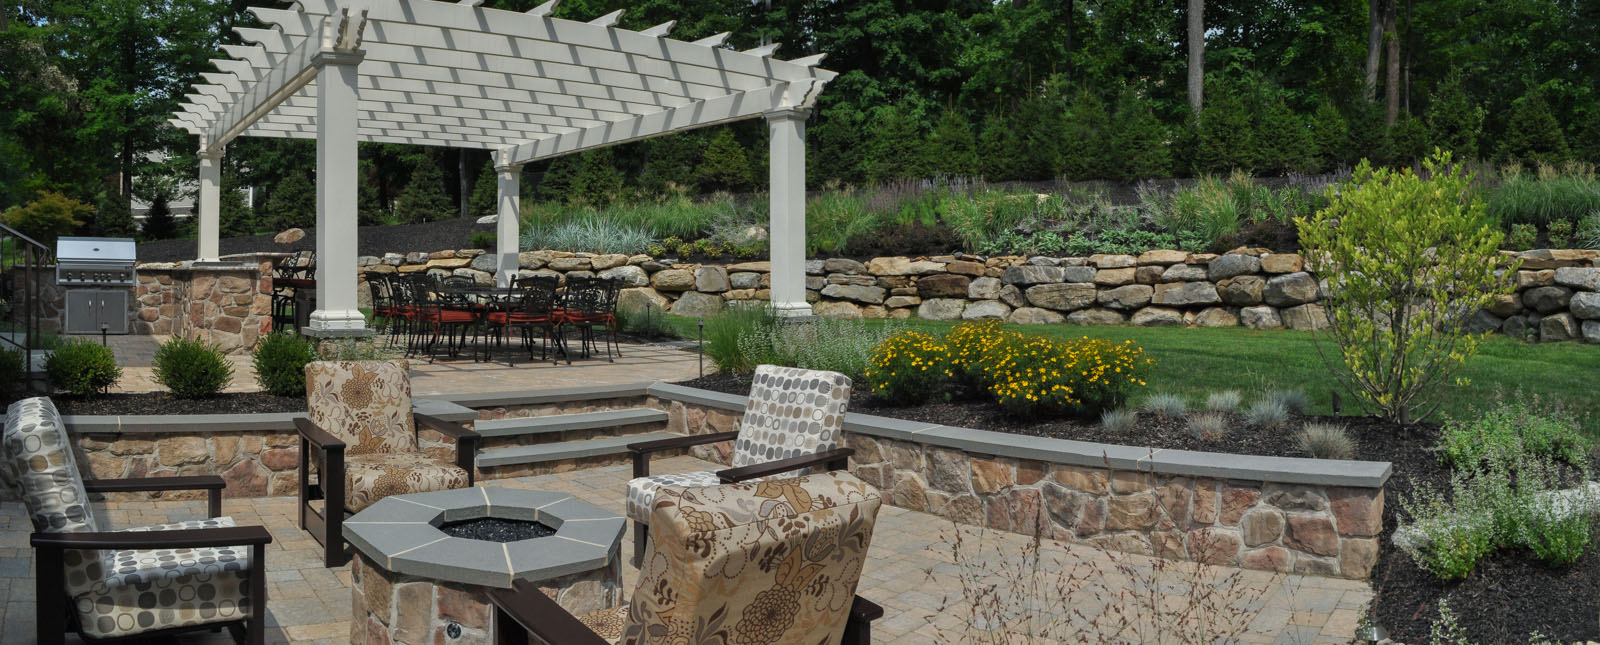 gas fire pit, seat wall, pergola, built-in bbq, landscape design - new jersey